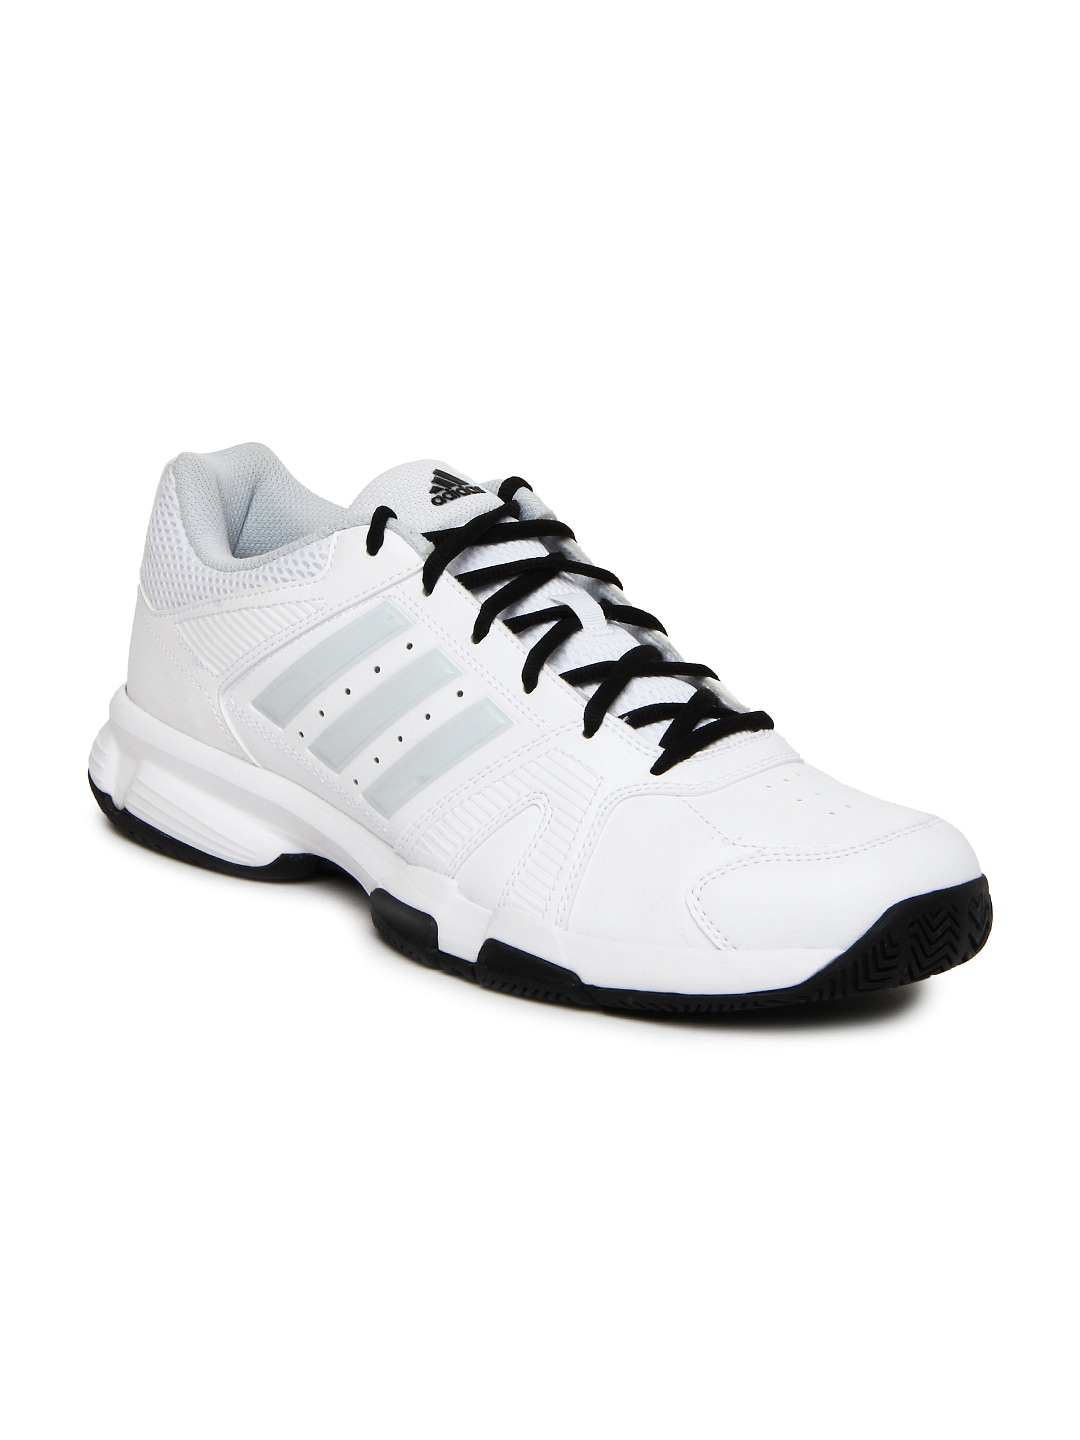 adidas men's barracks f10 black and white running shoes